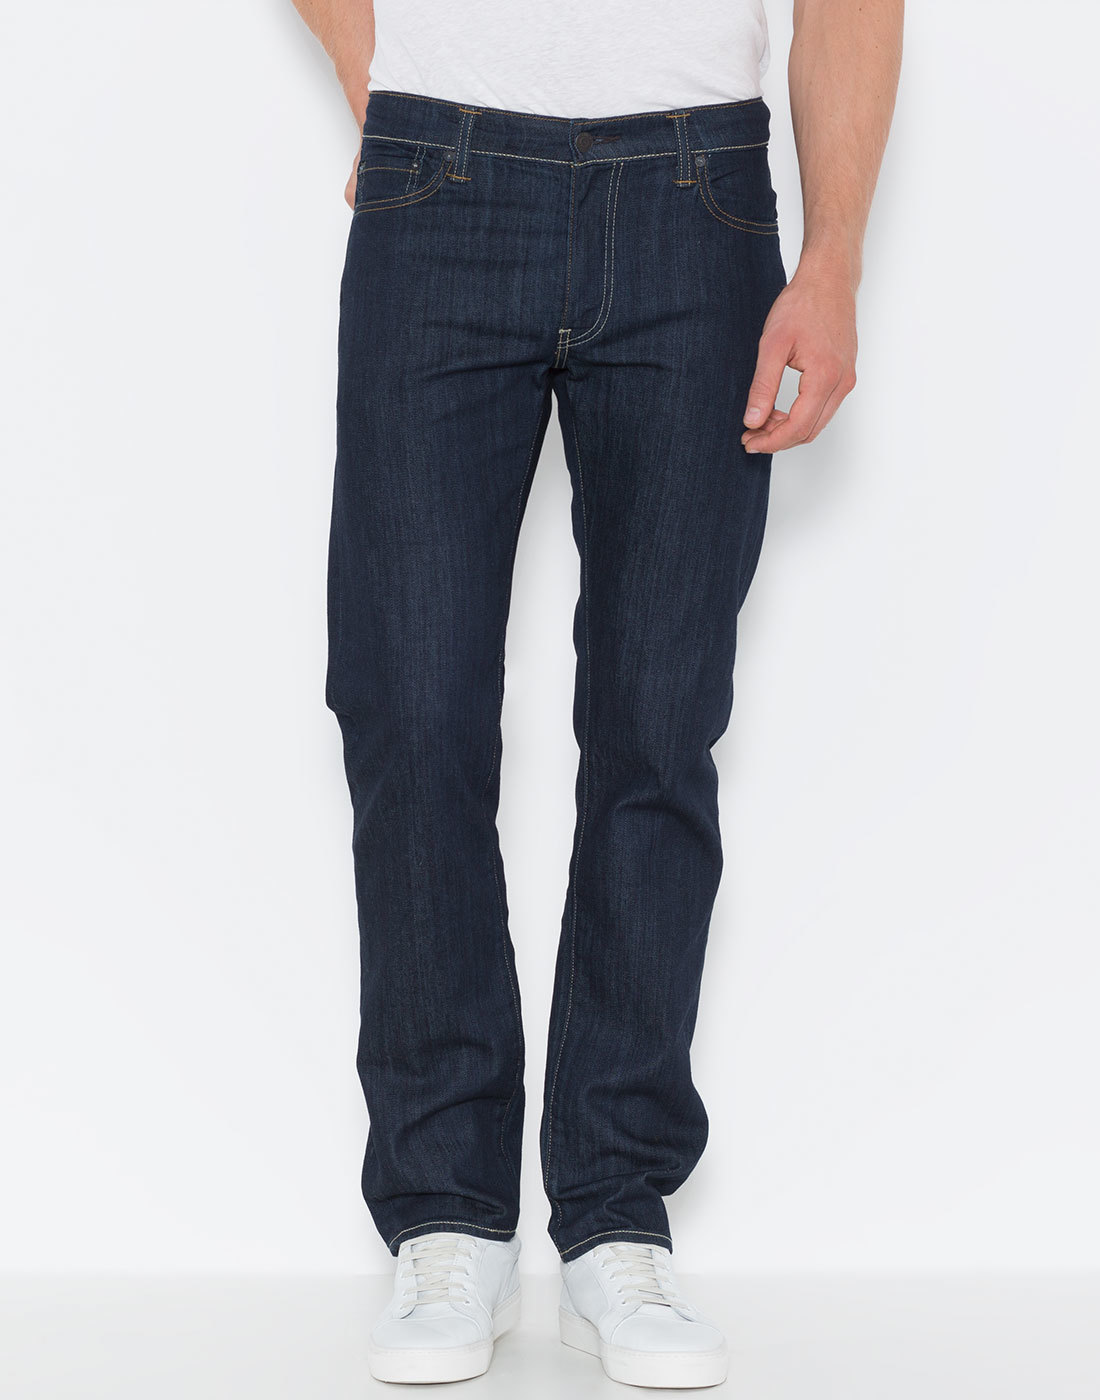 LEVI'S® 504 Regular Straight Jeans Worn Once Rinse